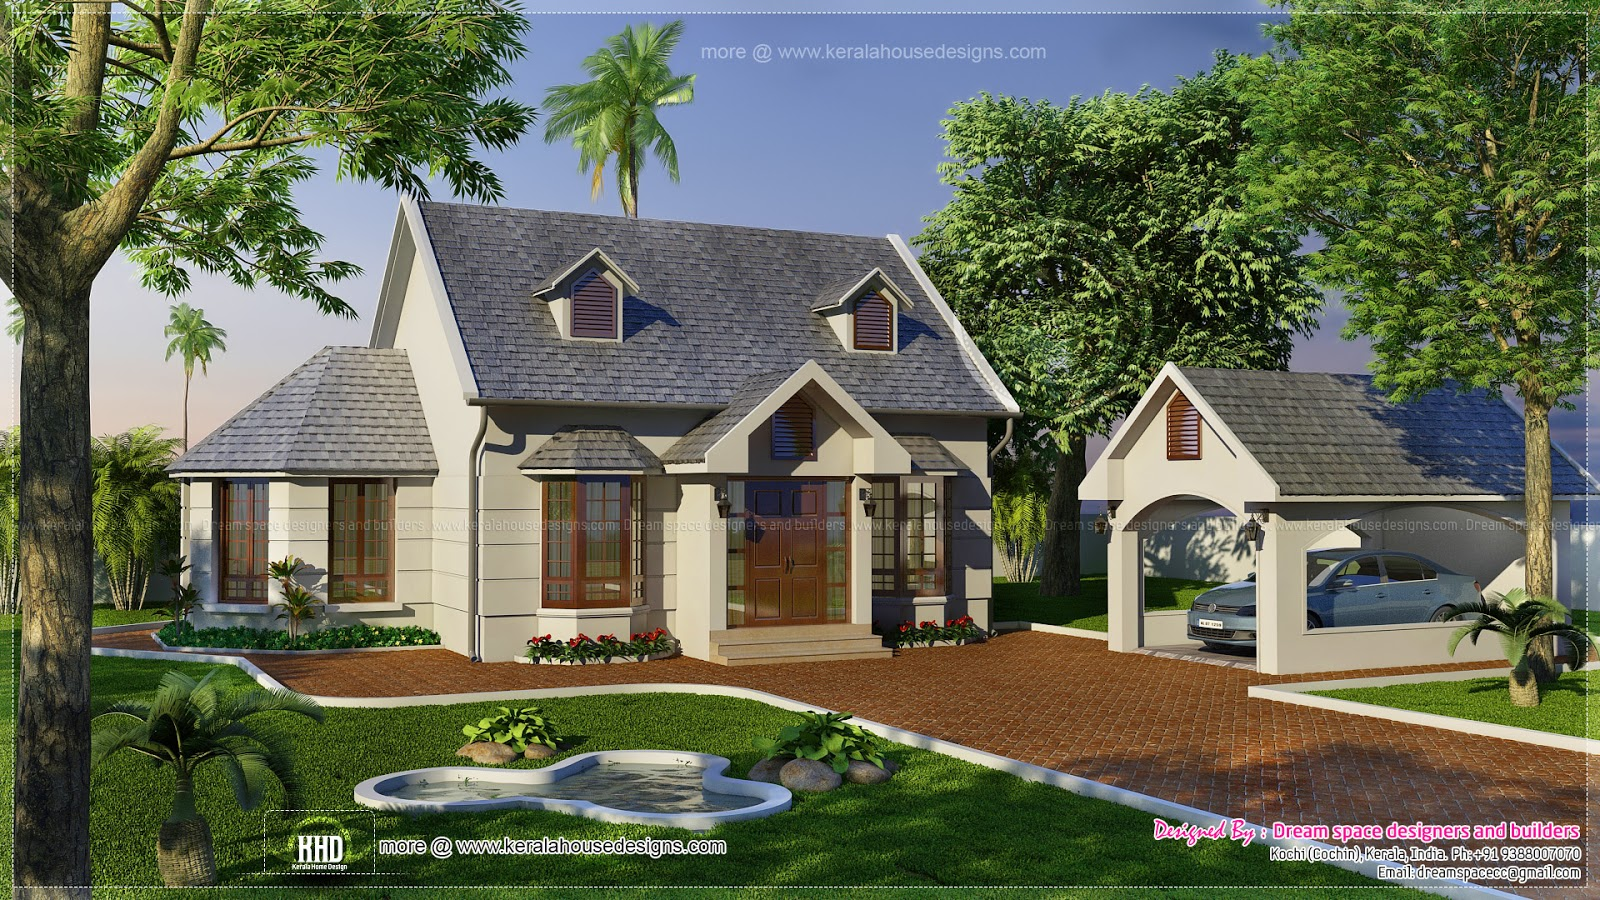 Vacation garden home design in 1200 home kerala for Kerala garden designs